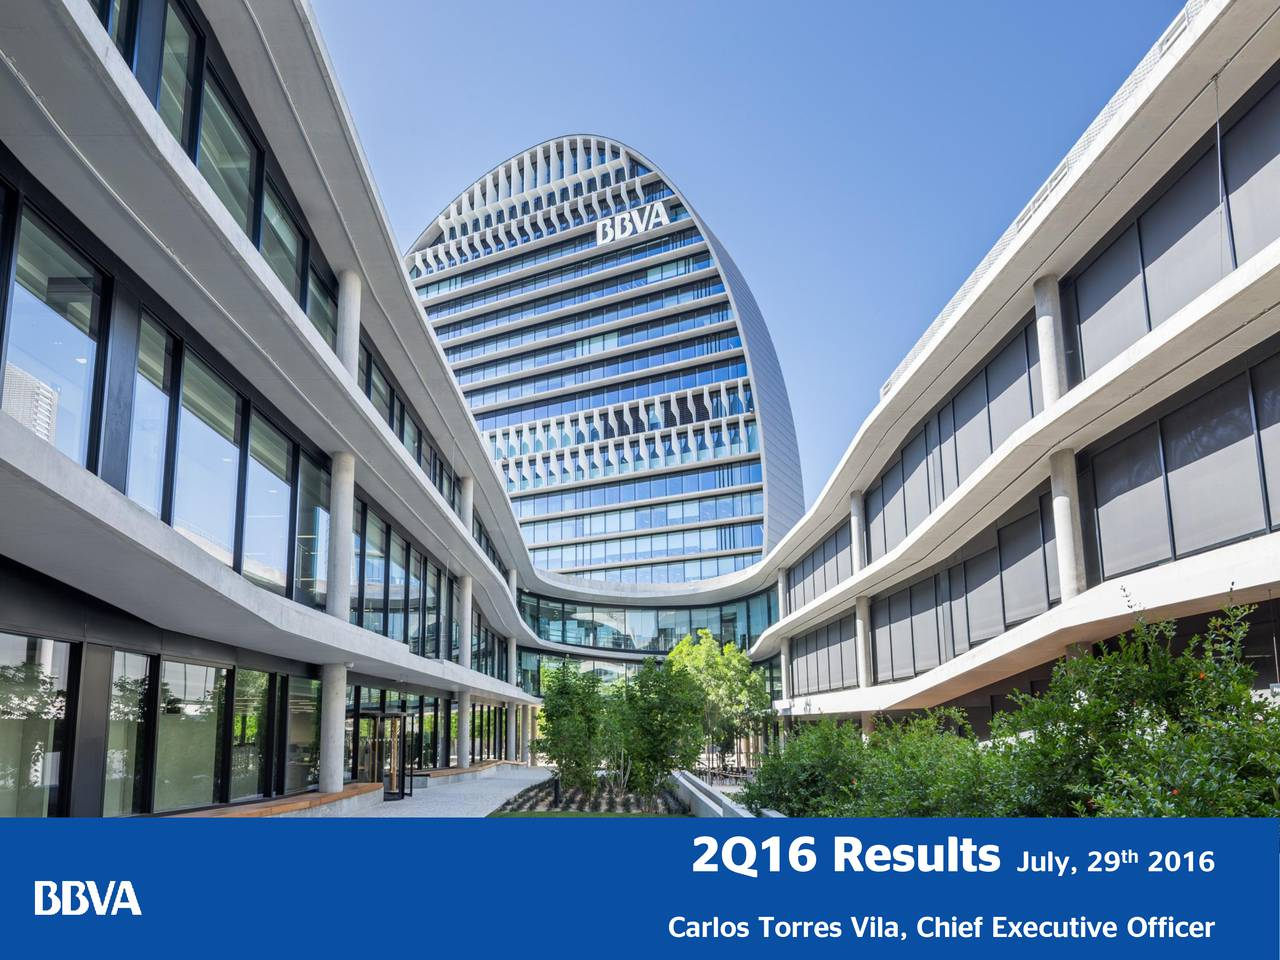 2Q16 Results July, 29 2016 Carlos Torres Vila, Chief Executive Officer 1